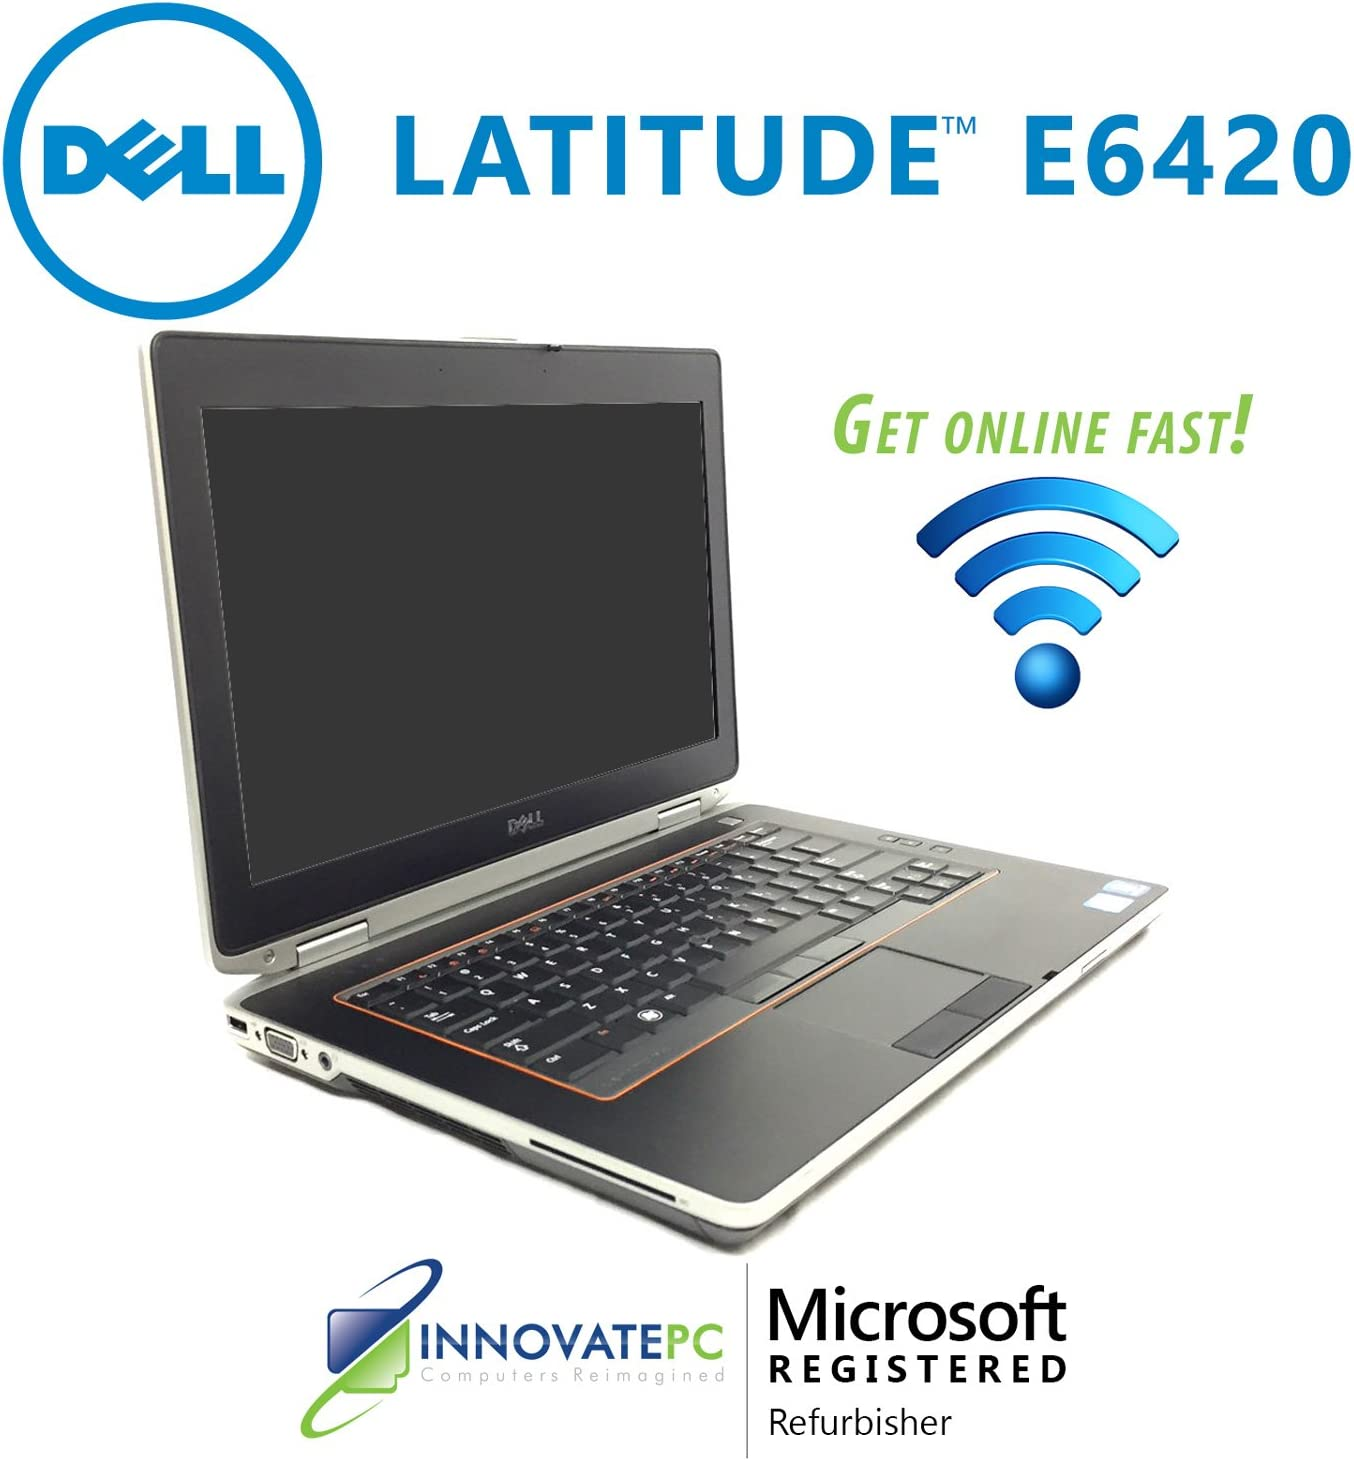 "Dell Latitude E6420 Core i5-2520M 2.5GHz 4GB 250GB DVD±RW NVIDIA Optimus 14"" LED Laptop Windows 7 Professional w/6-Cell Battery"